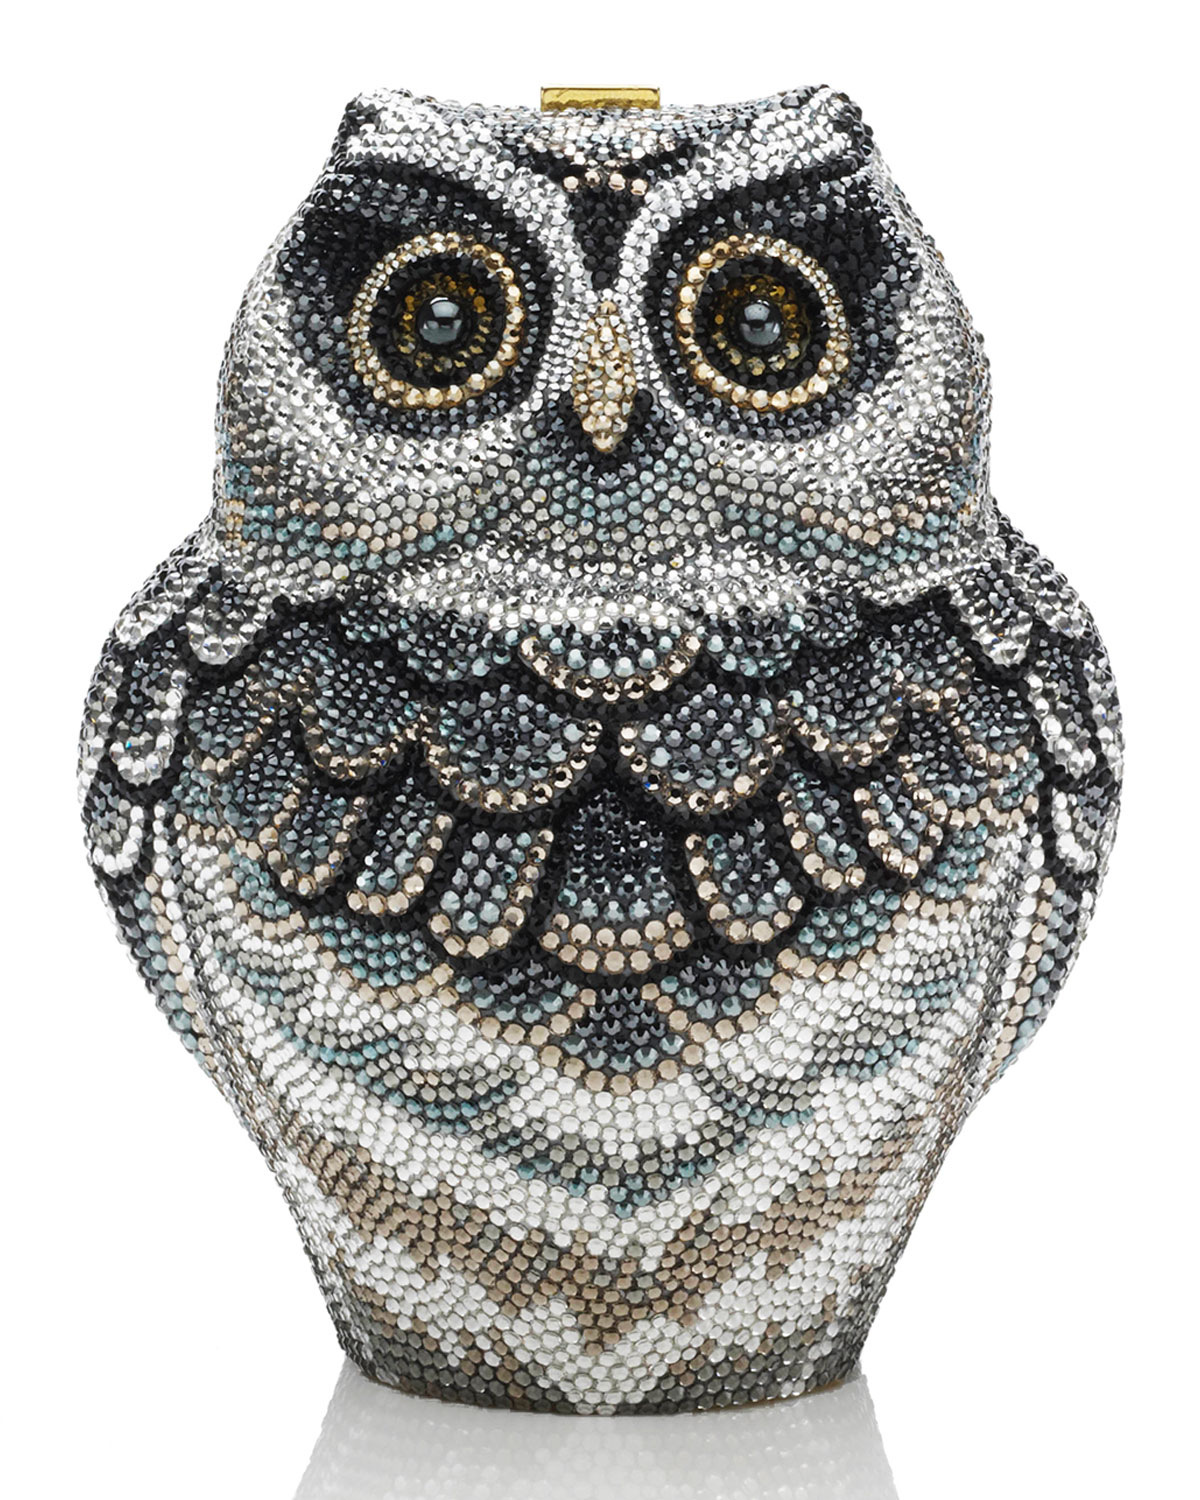 Wisdom Owl Evening Clutch Bag, Black